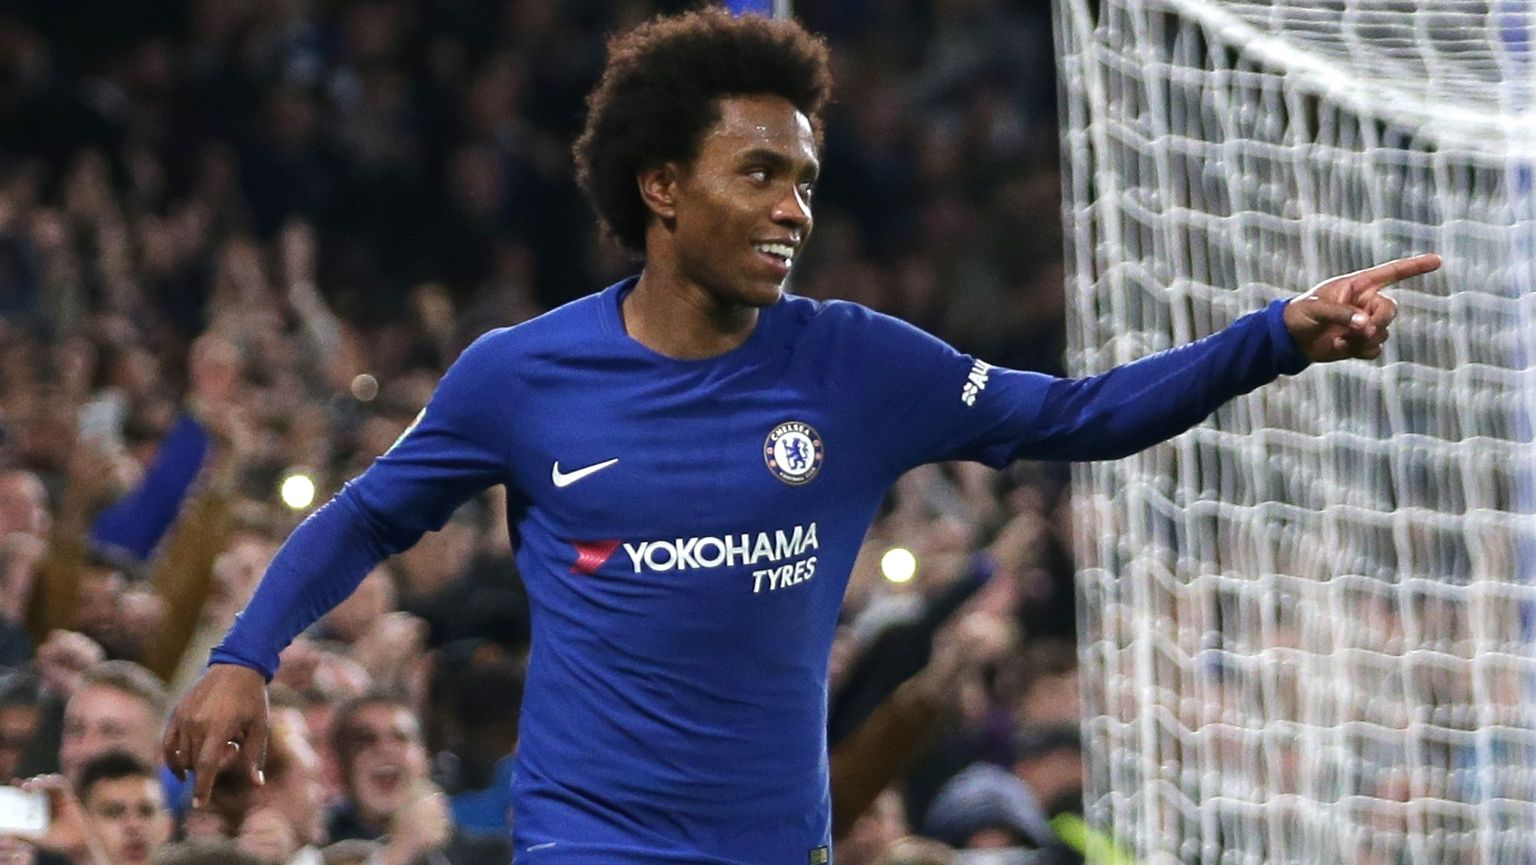 Willian celebrates after scoring for Chelsea. (Getty Images)